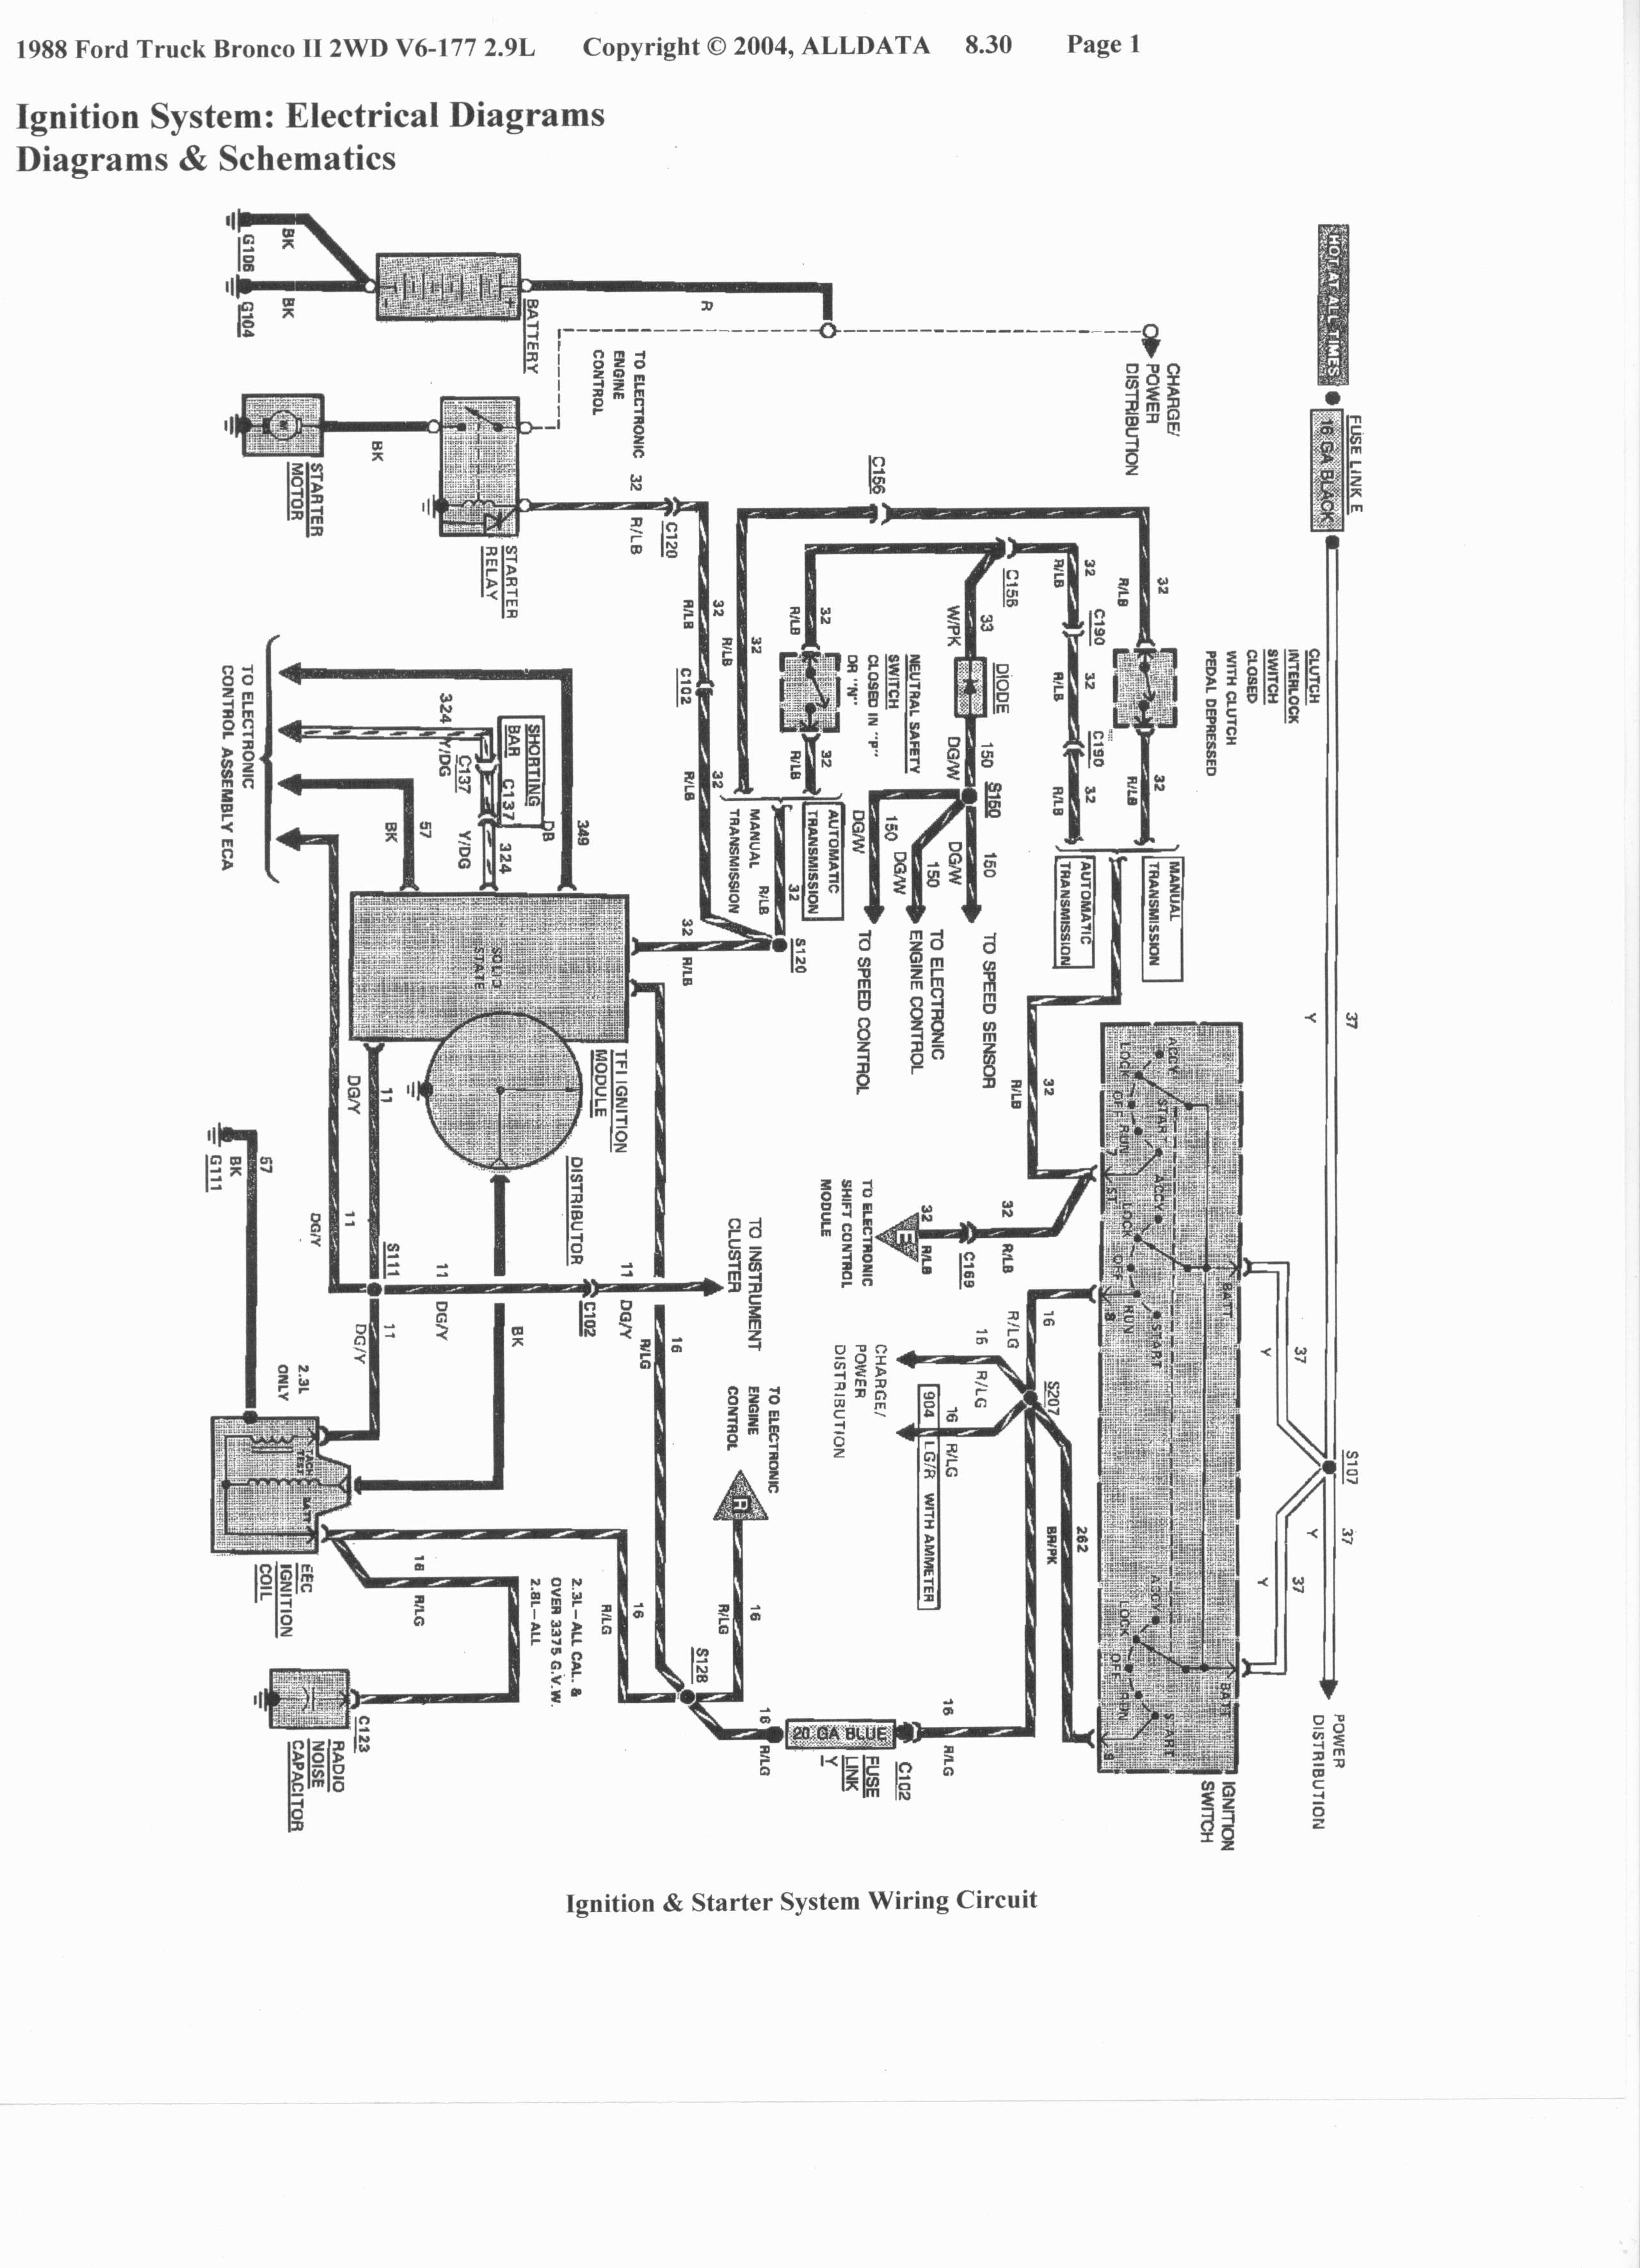 Electronic Ignition Wiring Diagram 86 Ford Ranger